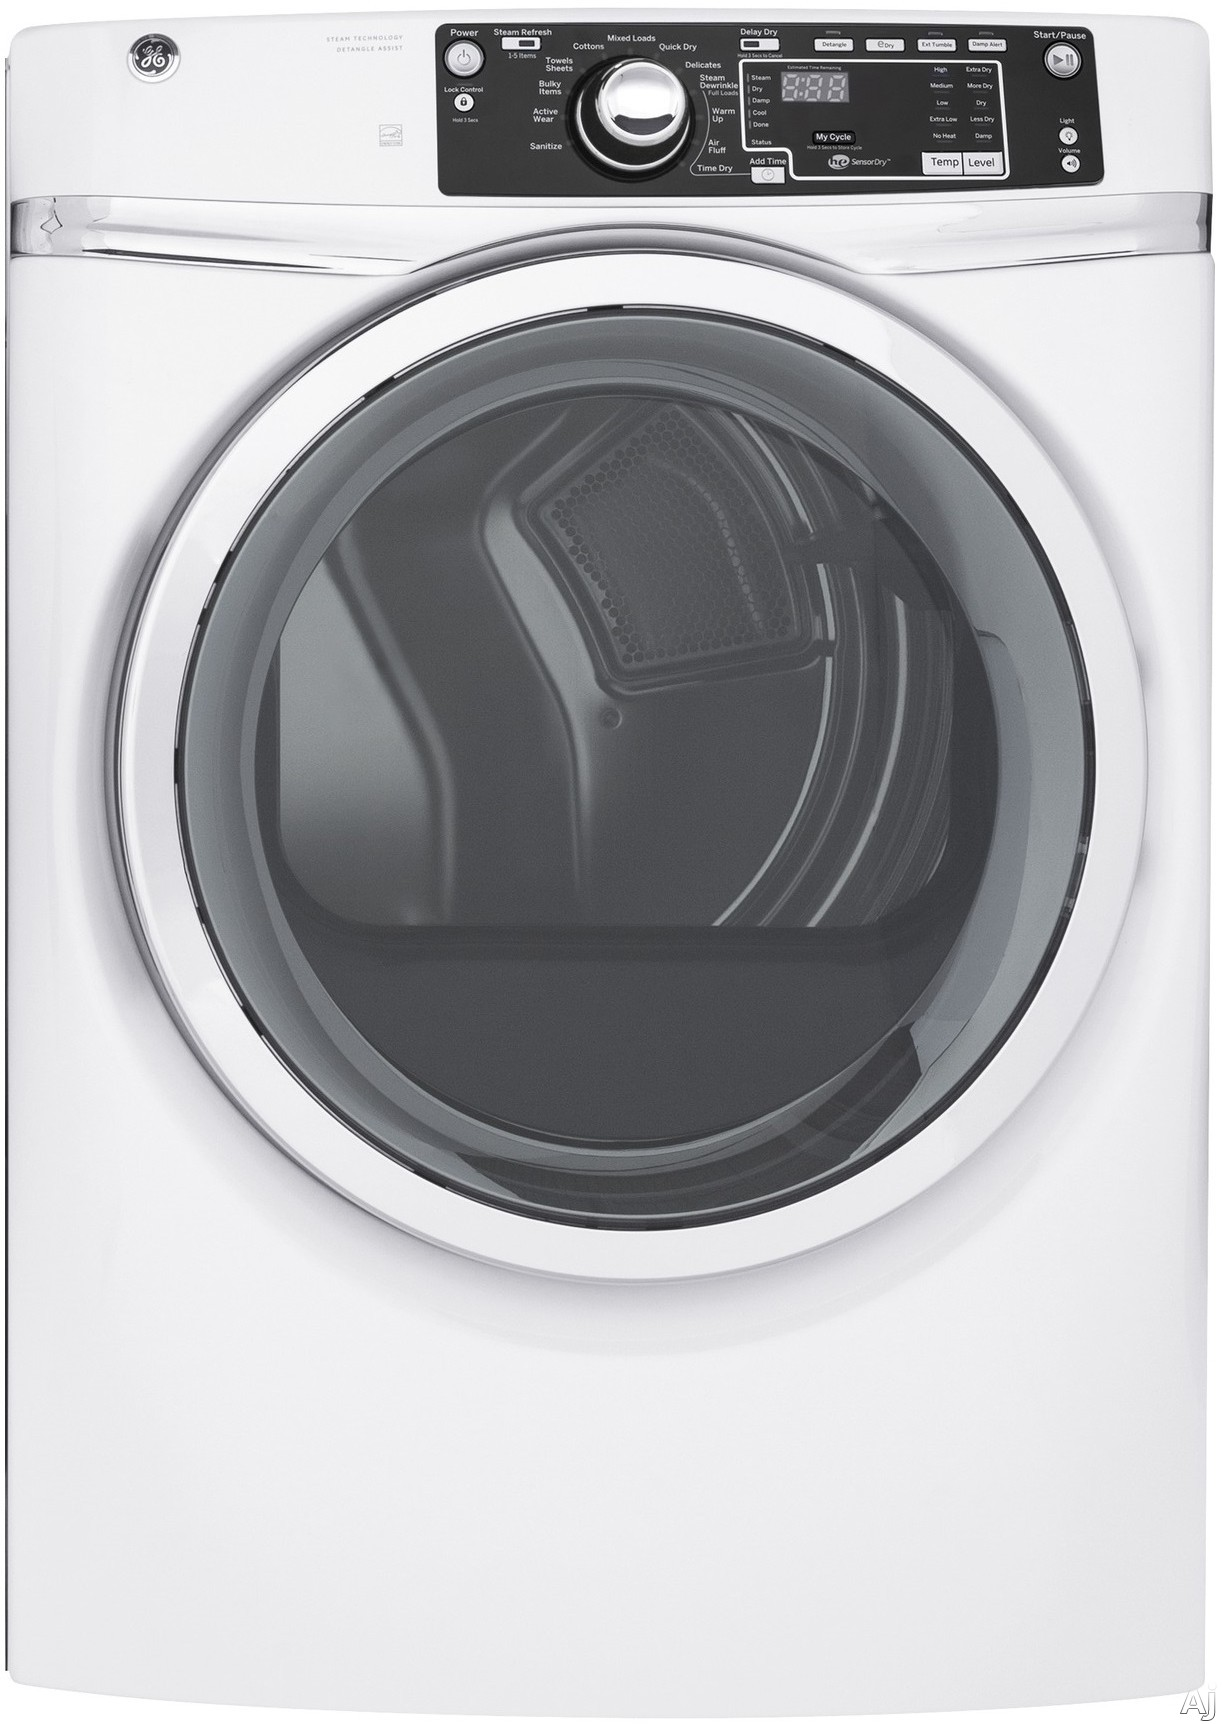 GE GFD48ESS 28 Inch Electric Dryer with 8.3 cu. ft. Capacity, 13 Cycle Selections, Detangle Assist Option, Steam, Sensor Dry, Sanitize Cycle, ADA Compliant Design and ENERGY STAR